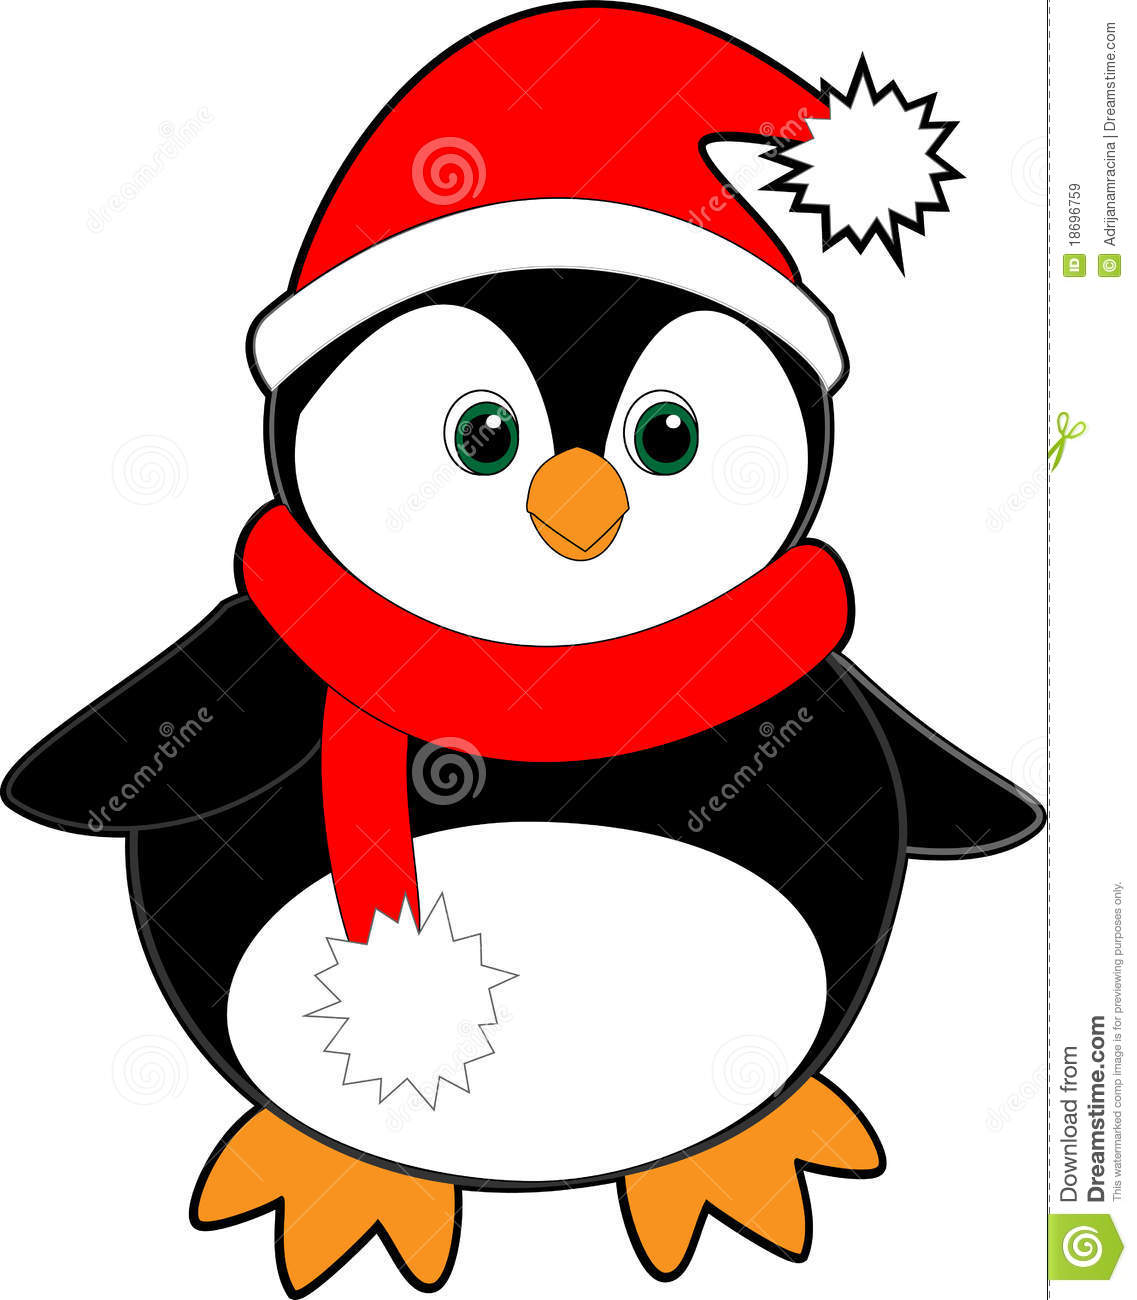 Clip Art Penguin With Scarf Clipart.